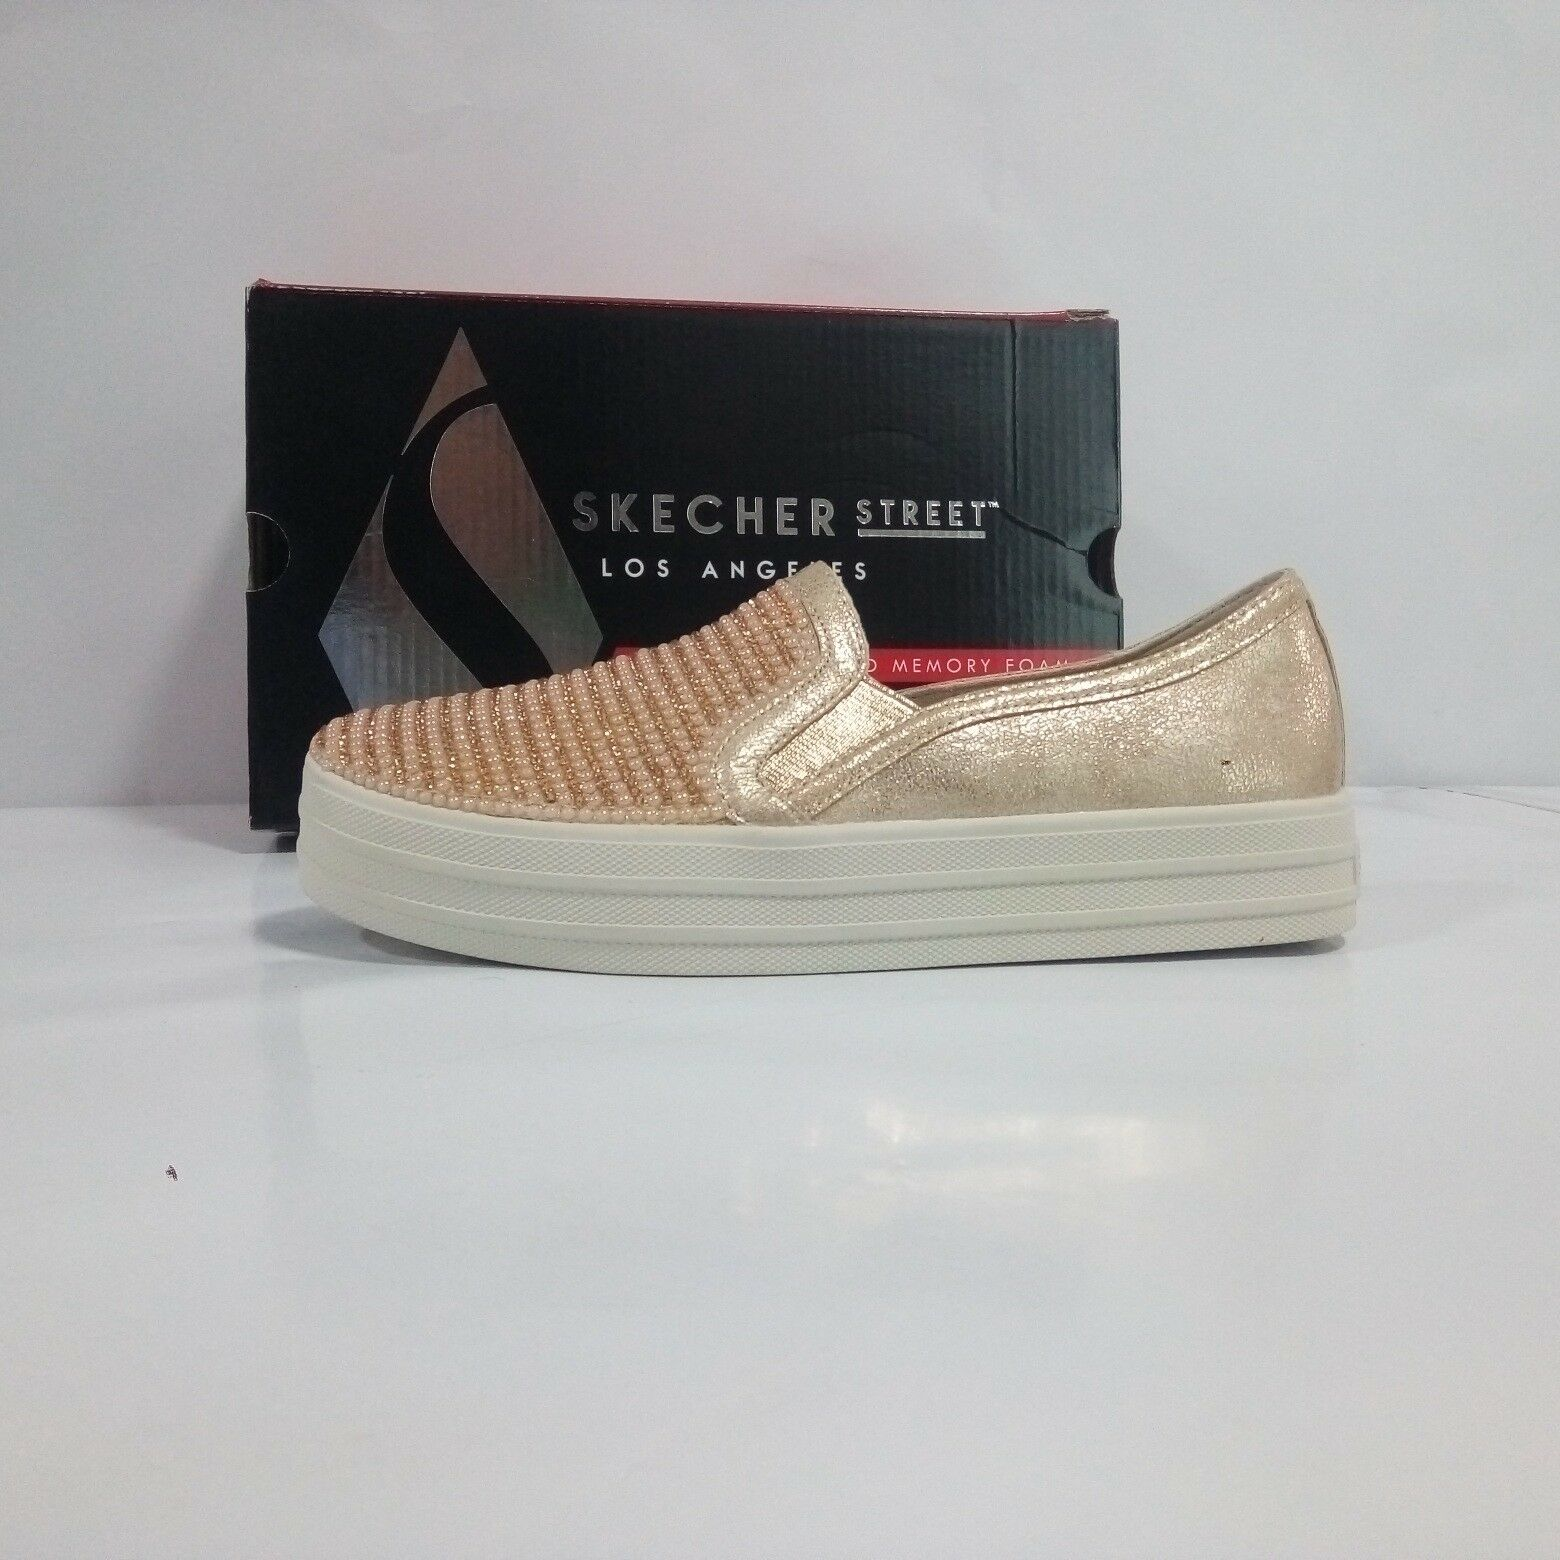 Scarpe Skechers Donna - Double Up Shiny Dancer Dancer Dancer - rosa Cipria - 801 4e51bc